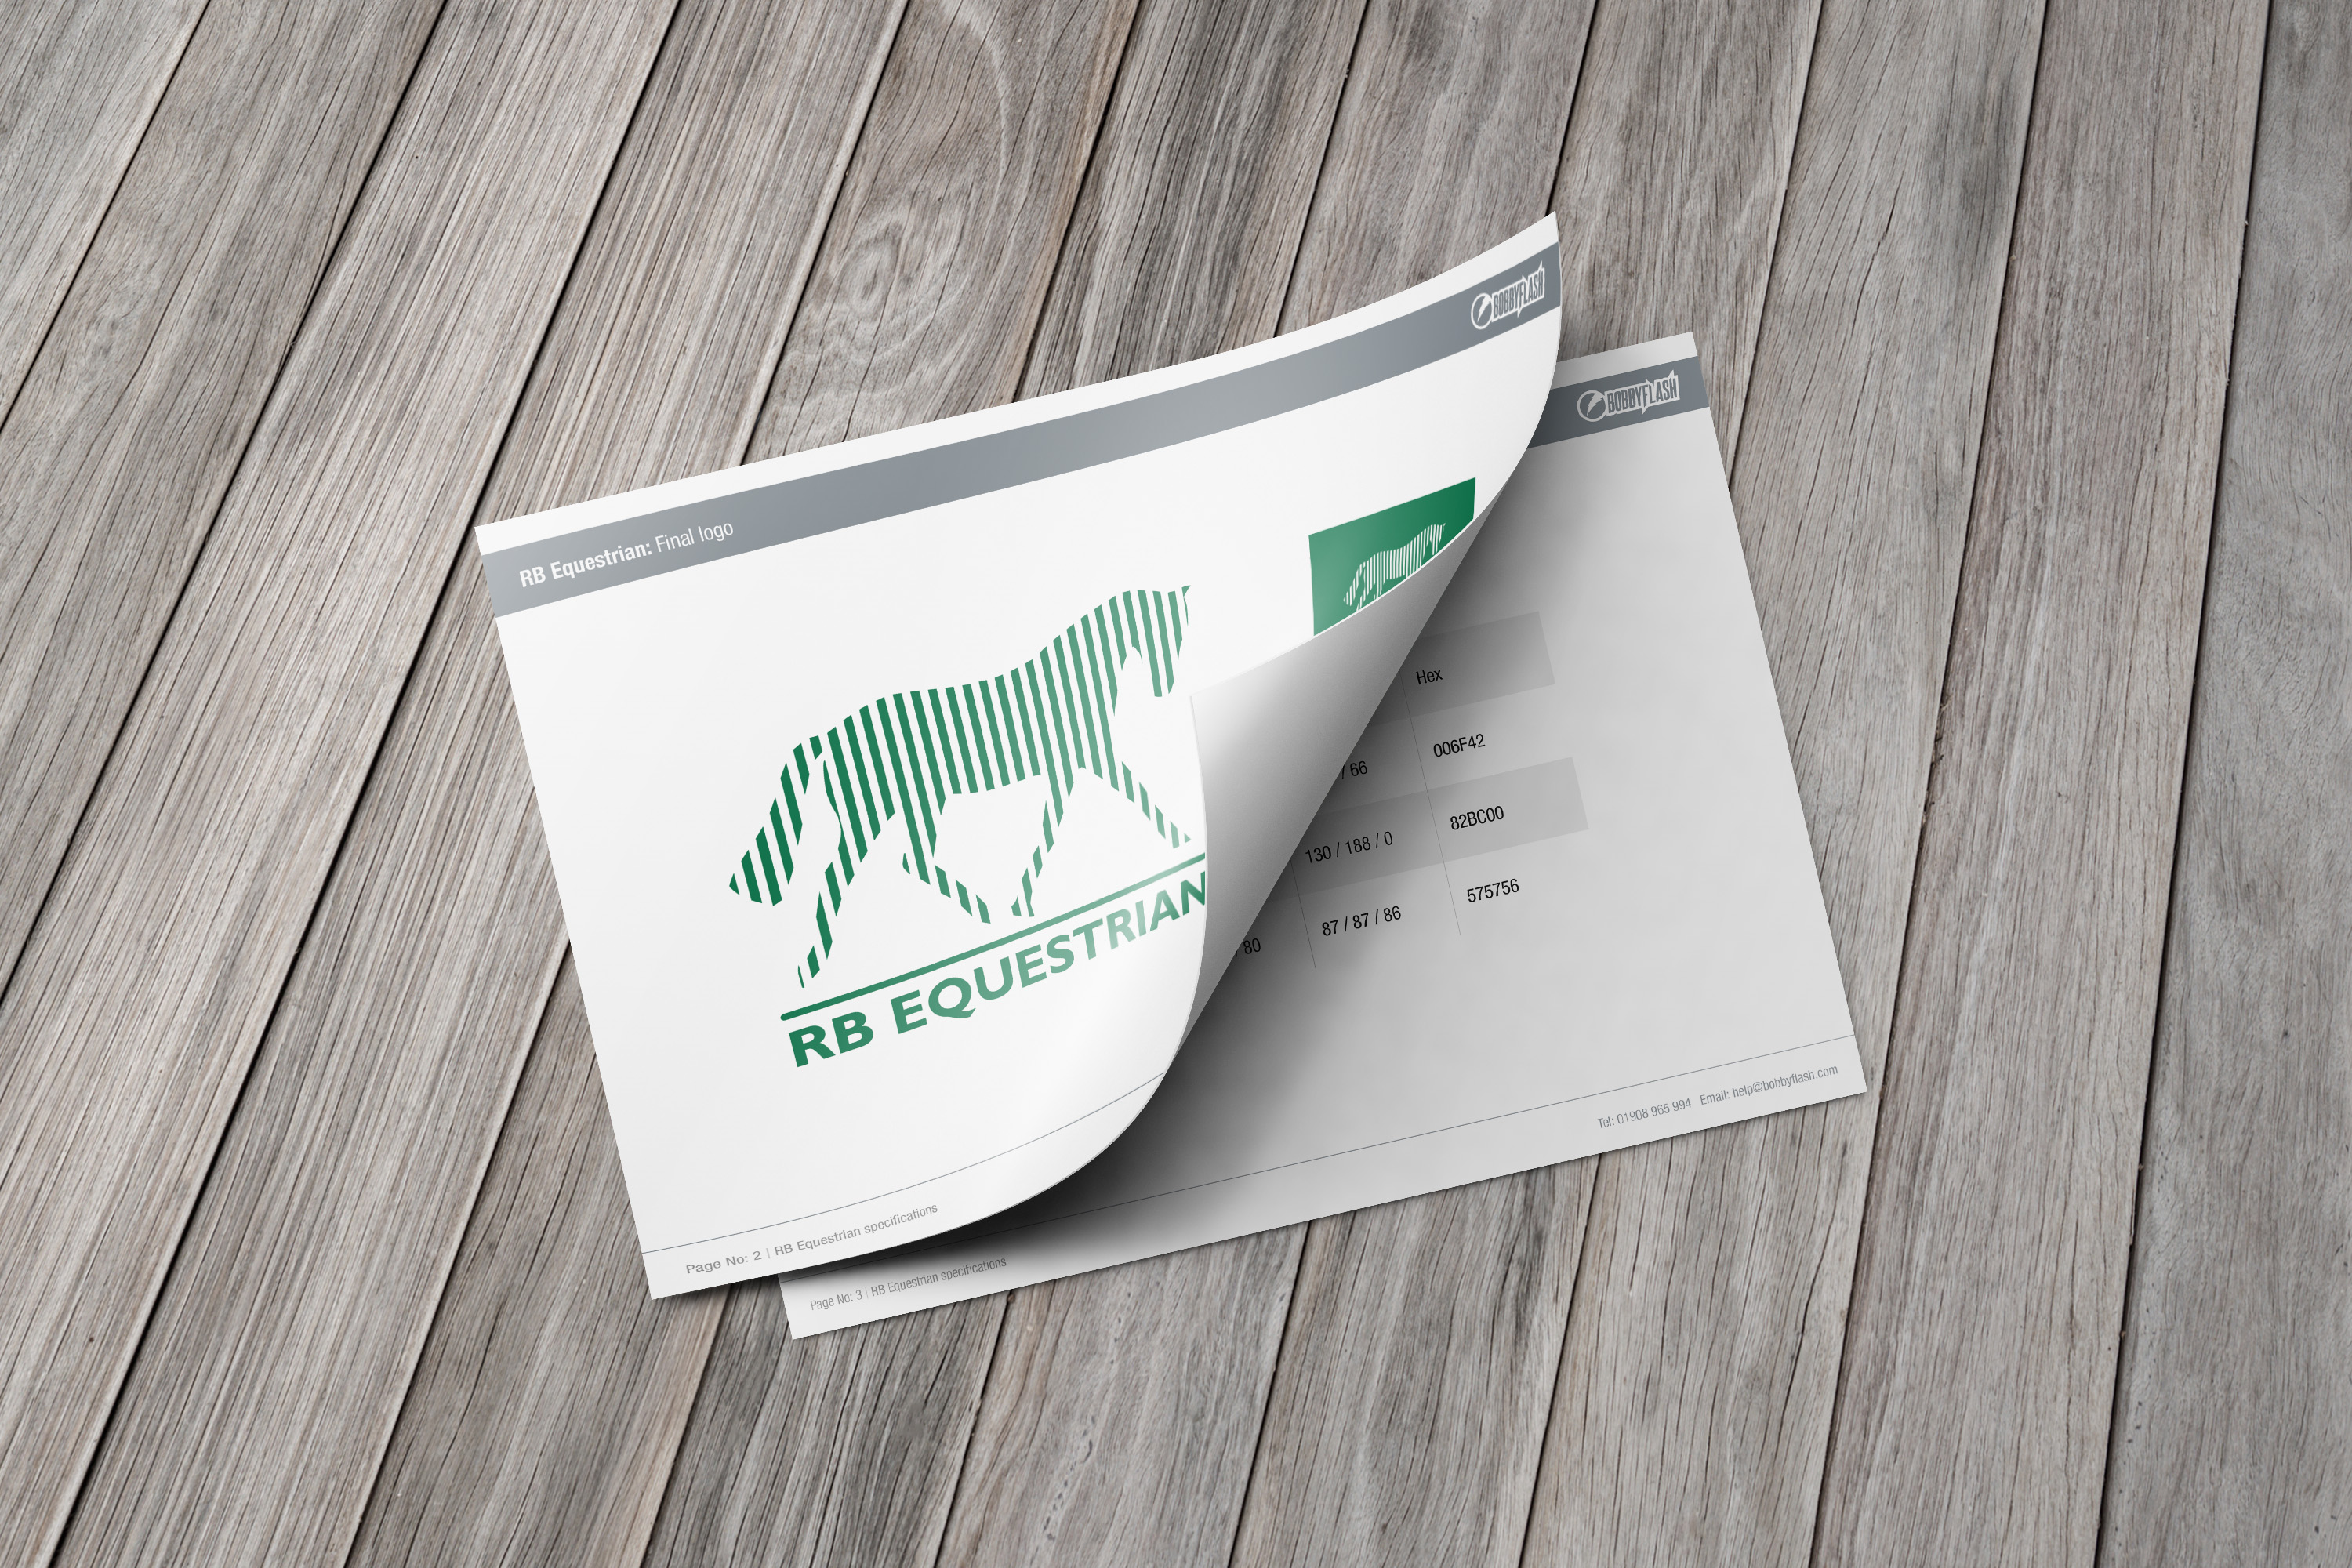 RB Equestrian guidelines web